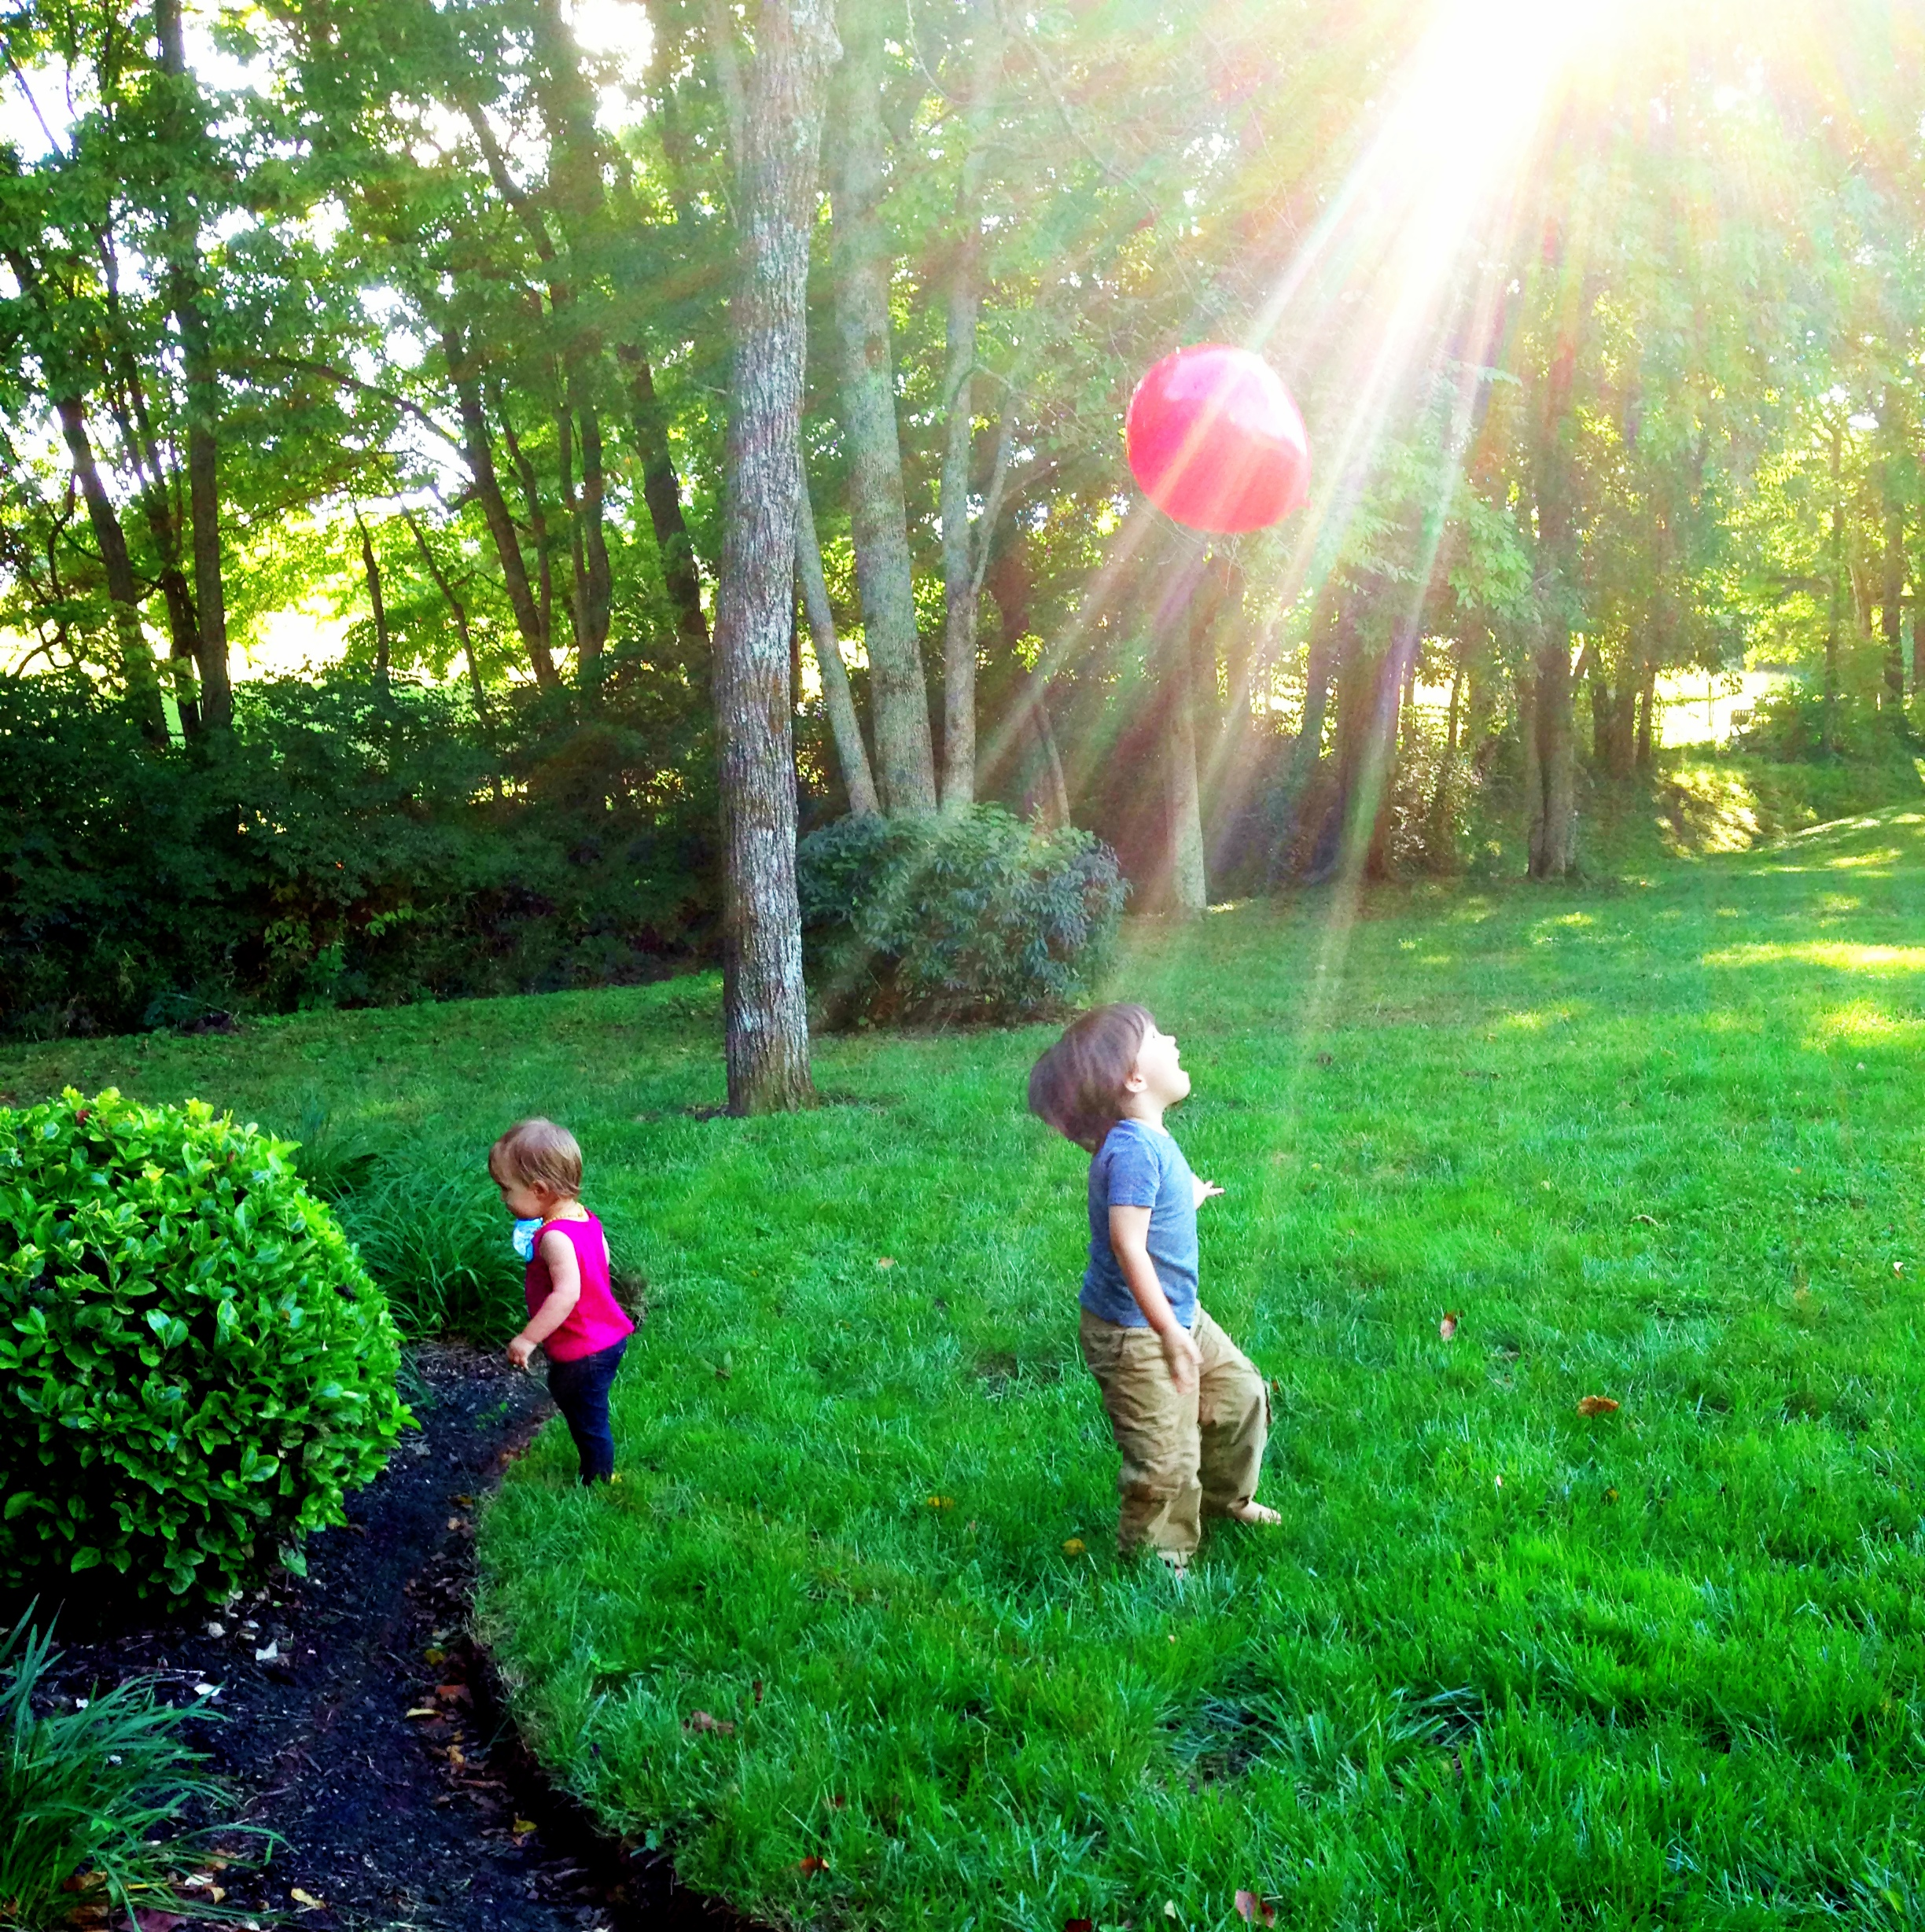 Grandchildren with a red balloon